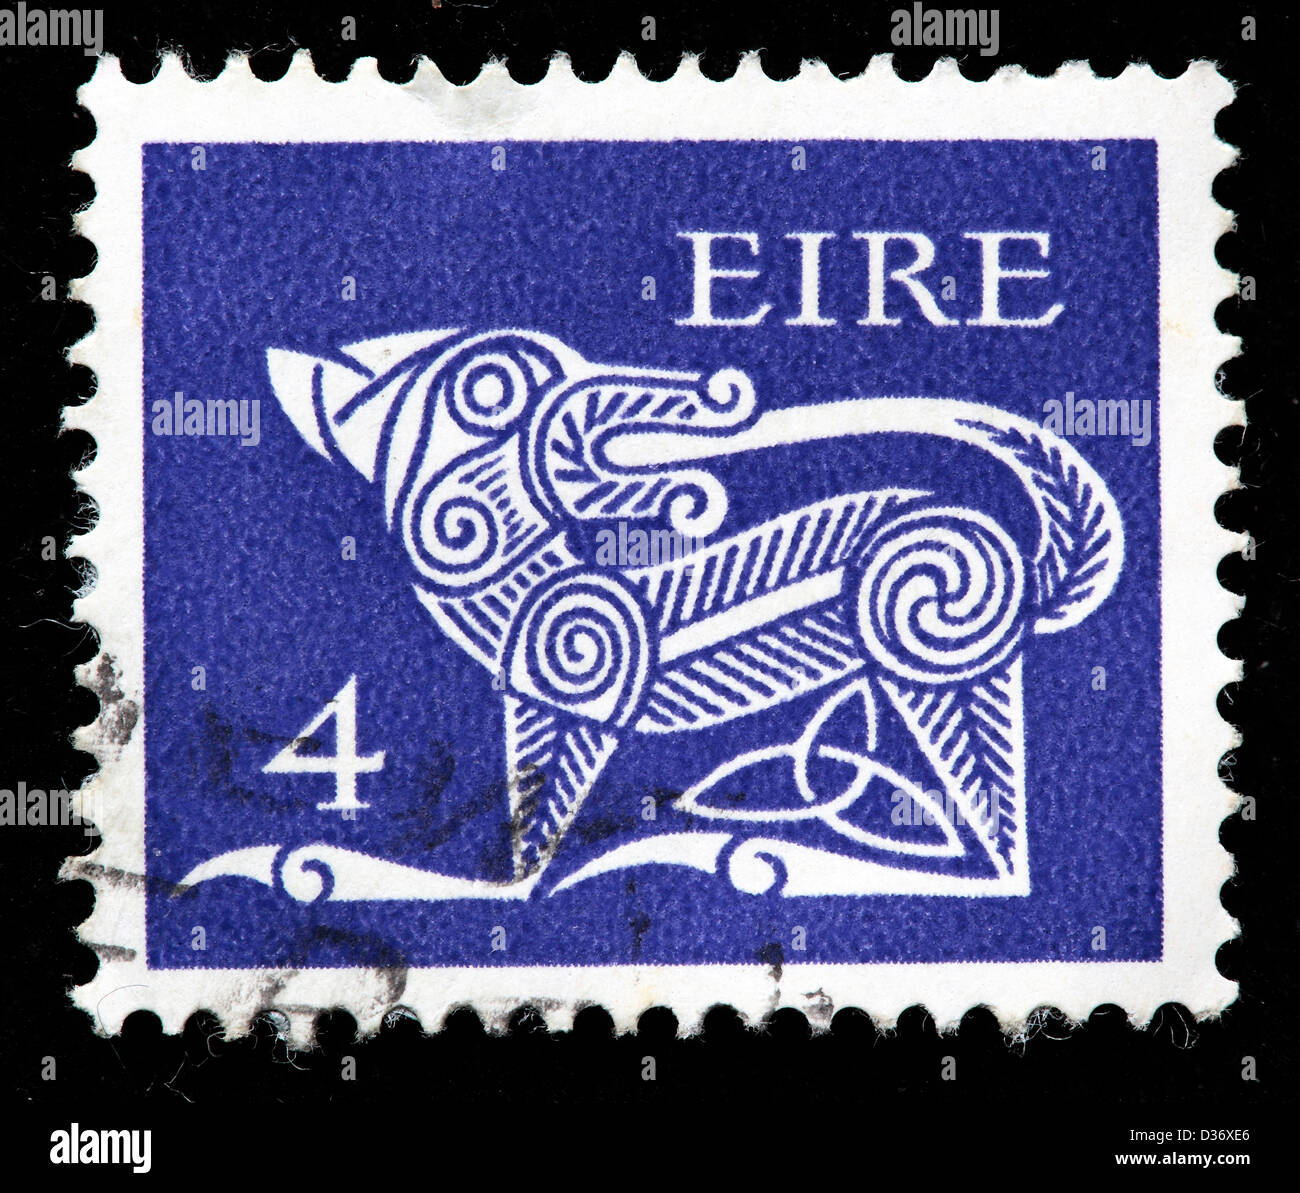 Dog from ancient brooch, postage stamp, Ireland, 1968 - Stock Image